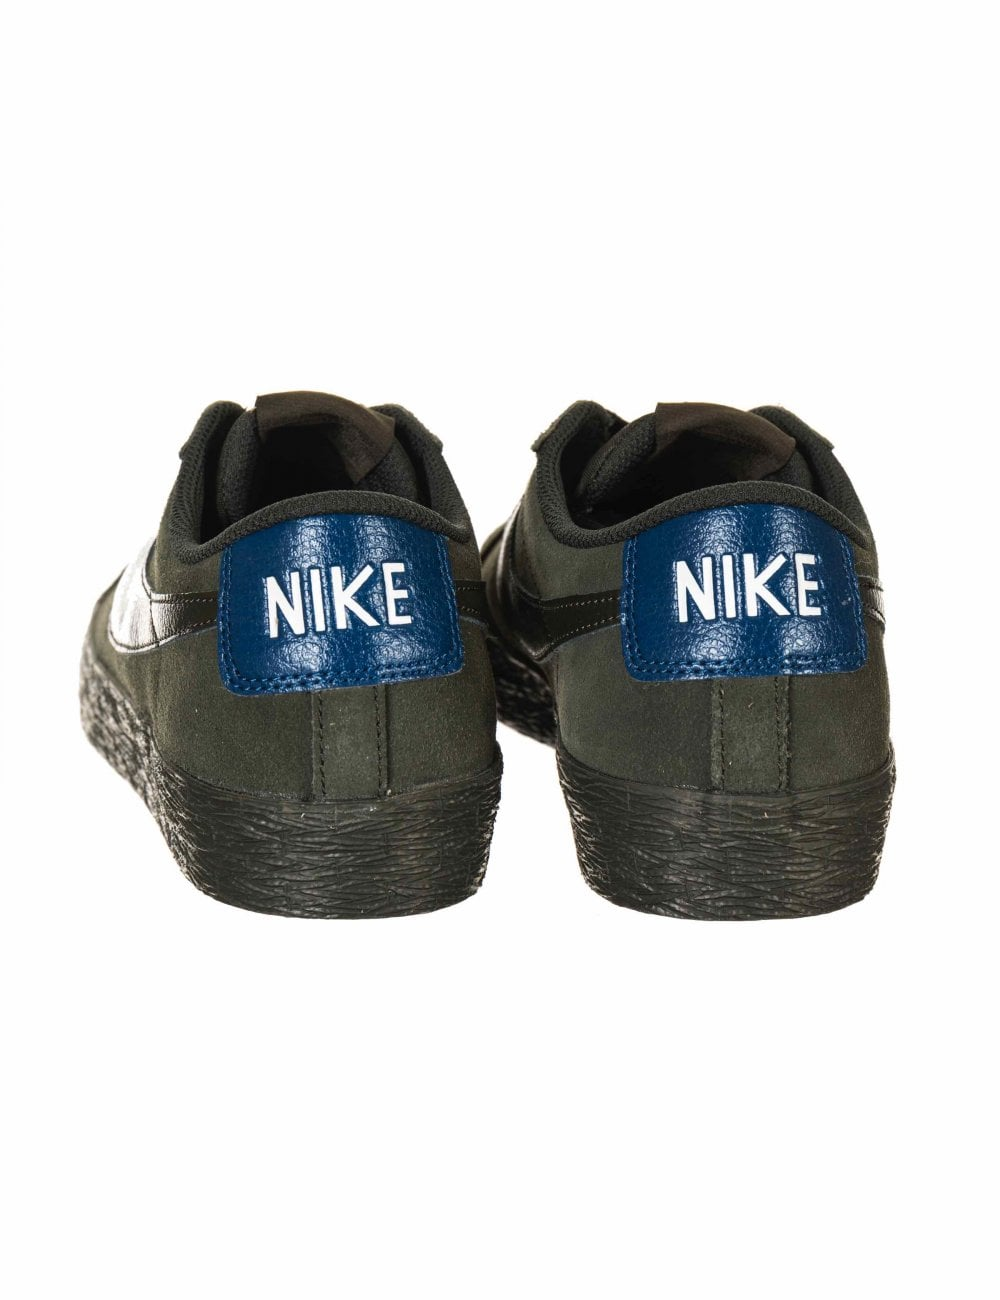 reembolso Imbécil Rayo  Nike SB Zoom Blazer Low Shoes - Sequoia/Blue Force - Trainers from Fat  Buddha Store UK